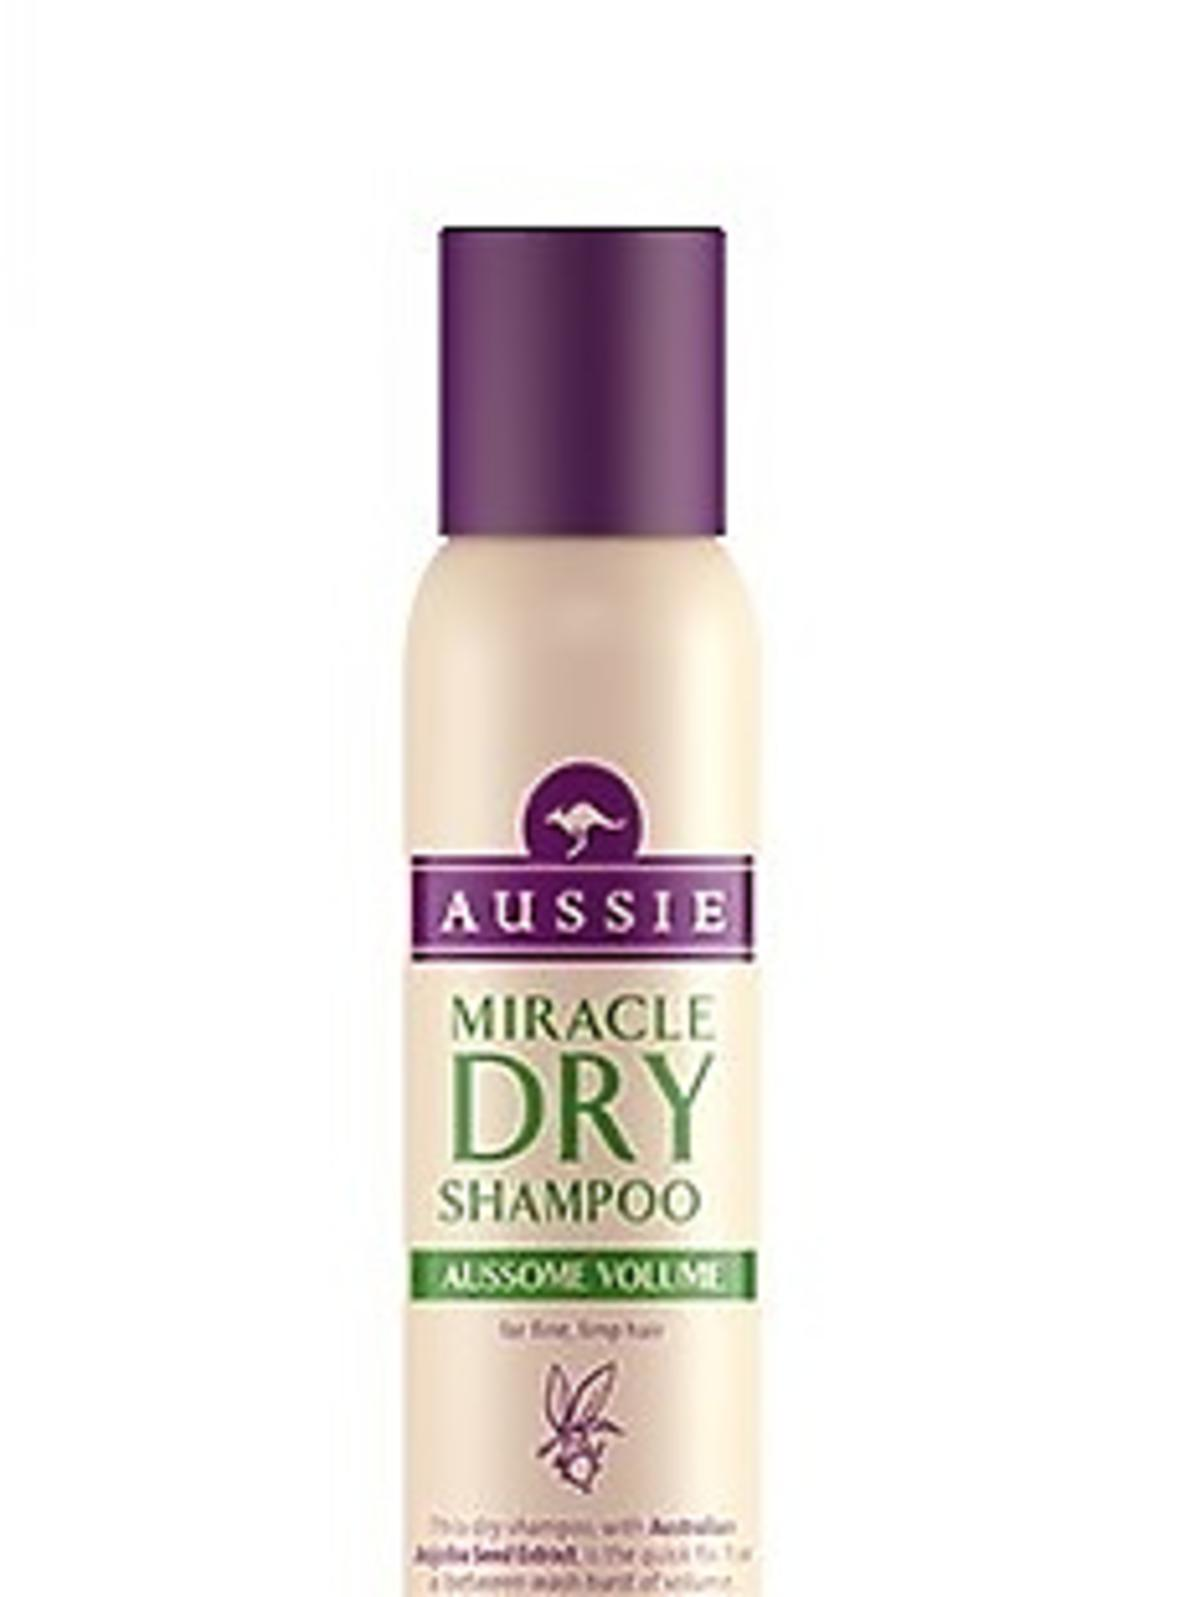 Aussome Volume, Miracle Dry Shampoo